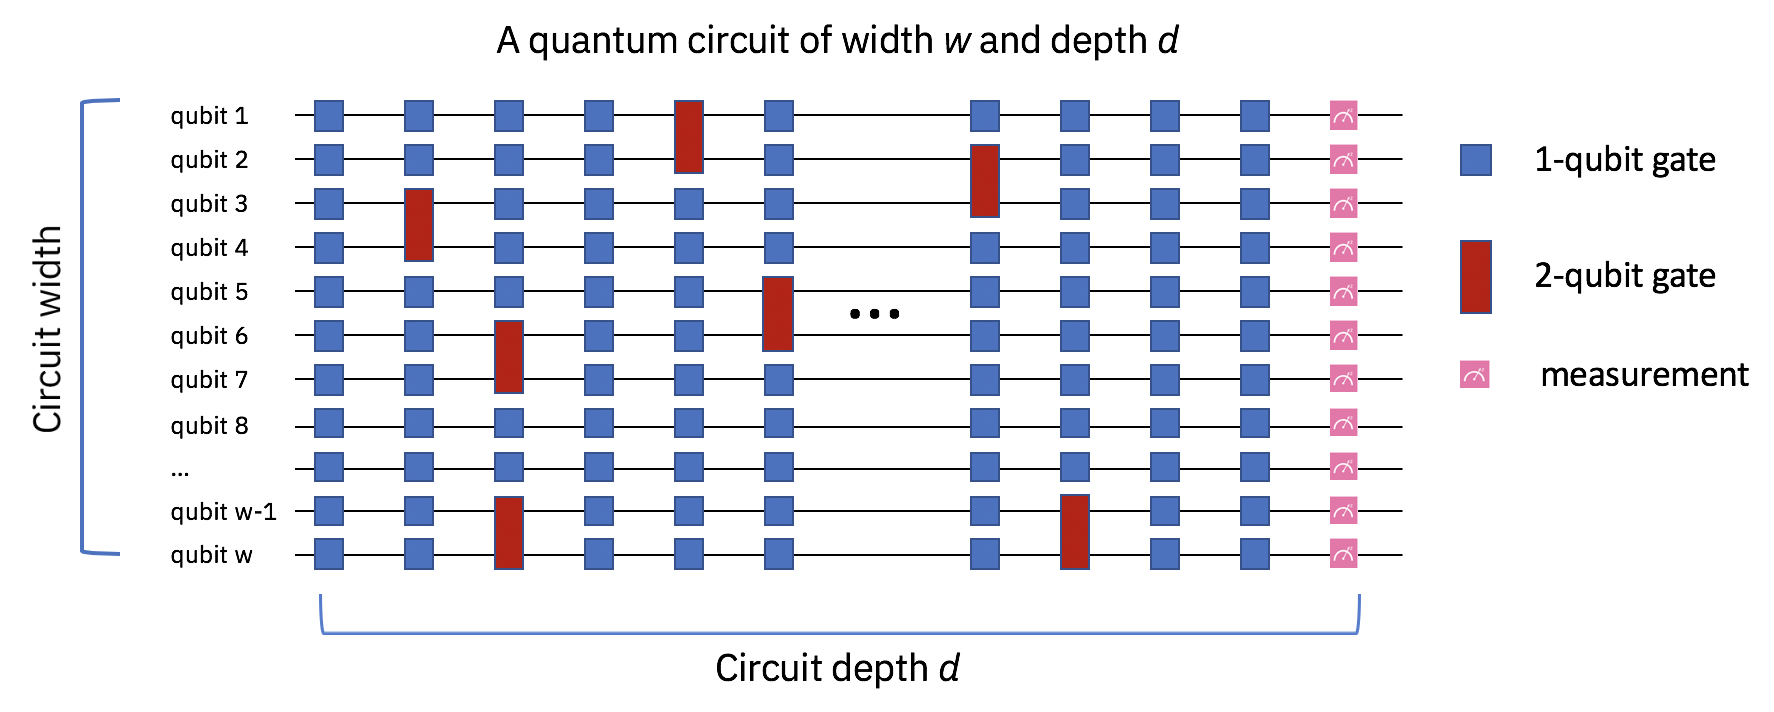 Graphic showing the circuit width depth